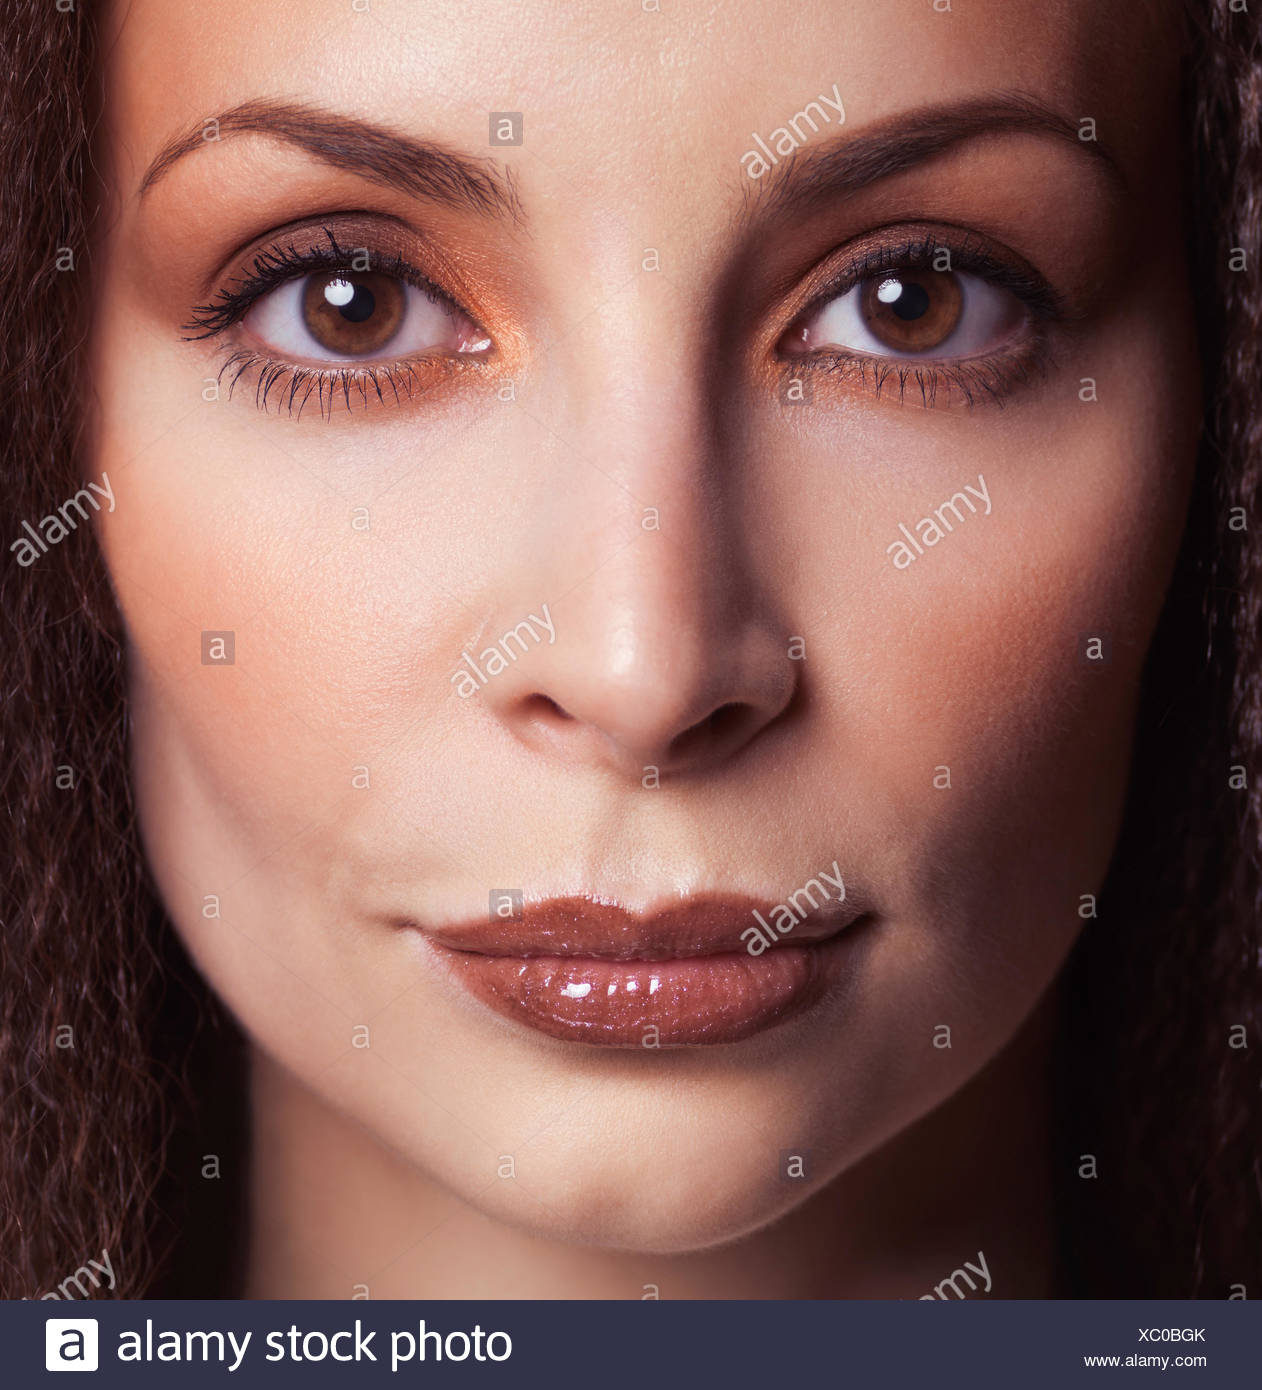 Woman's face wearing makeup Stock Photo